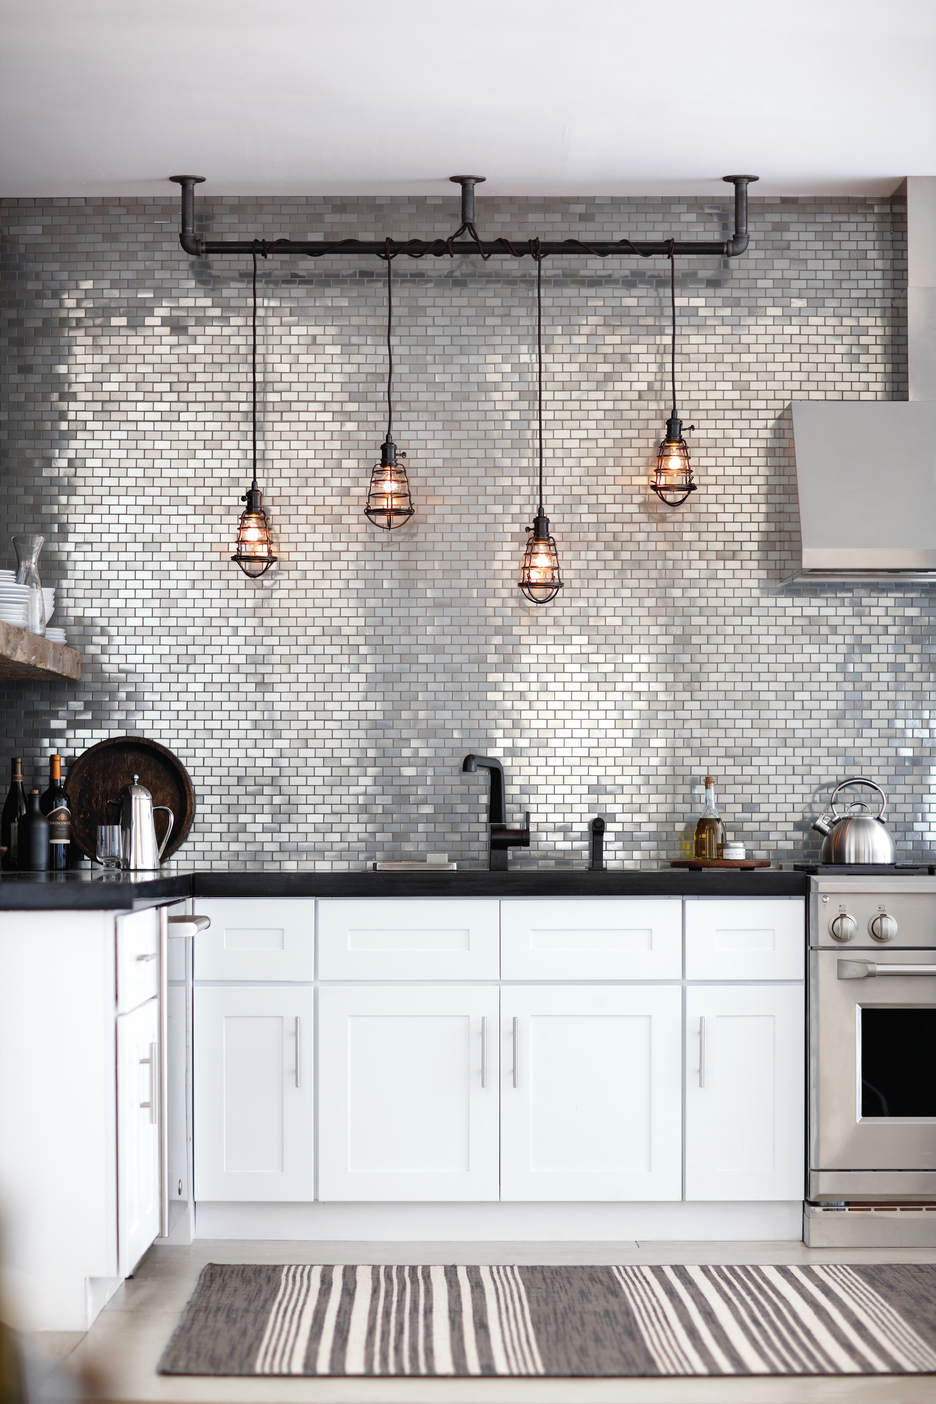 18 Unique Kitchen Backsplash Design Ideas